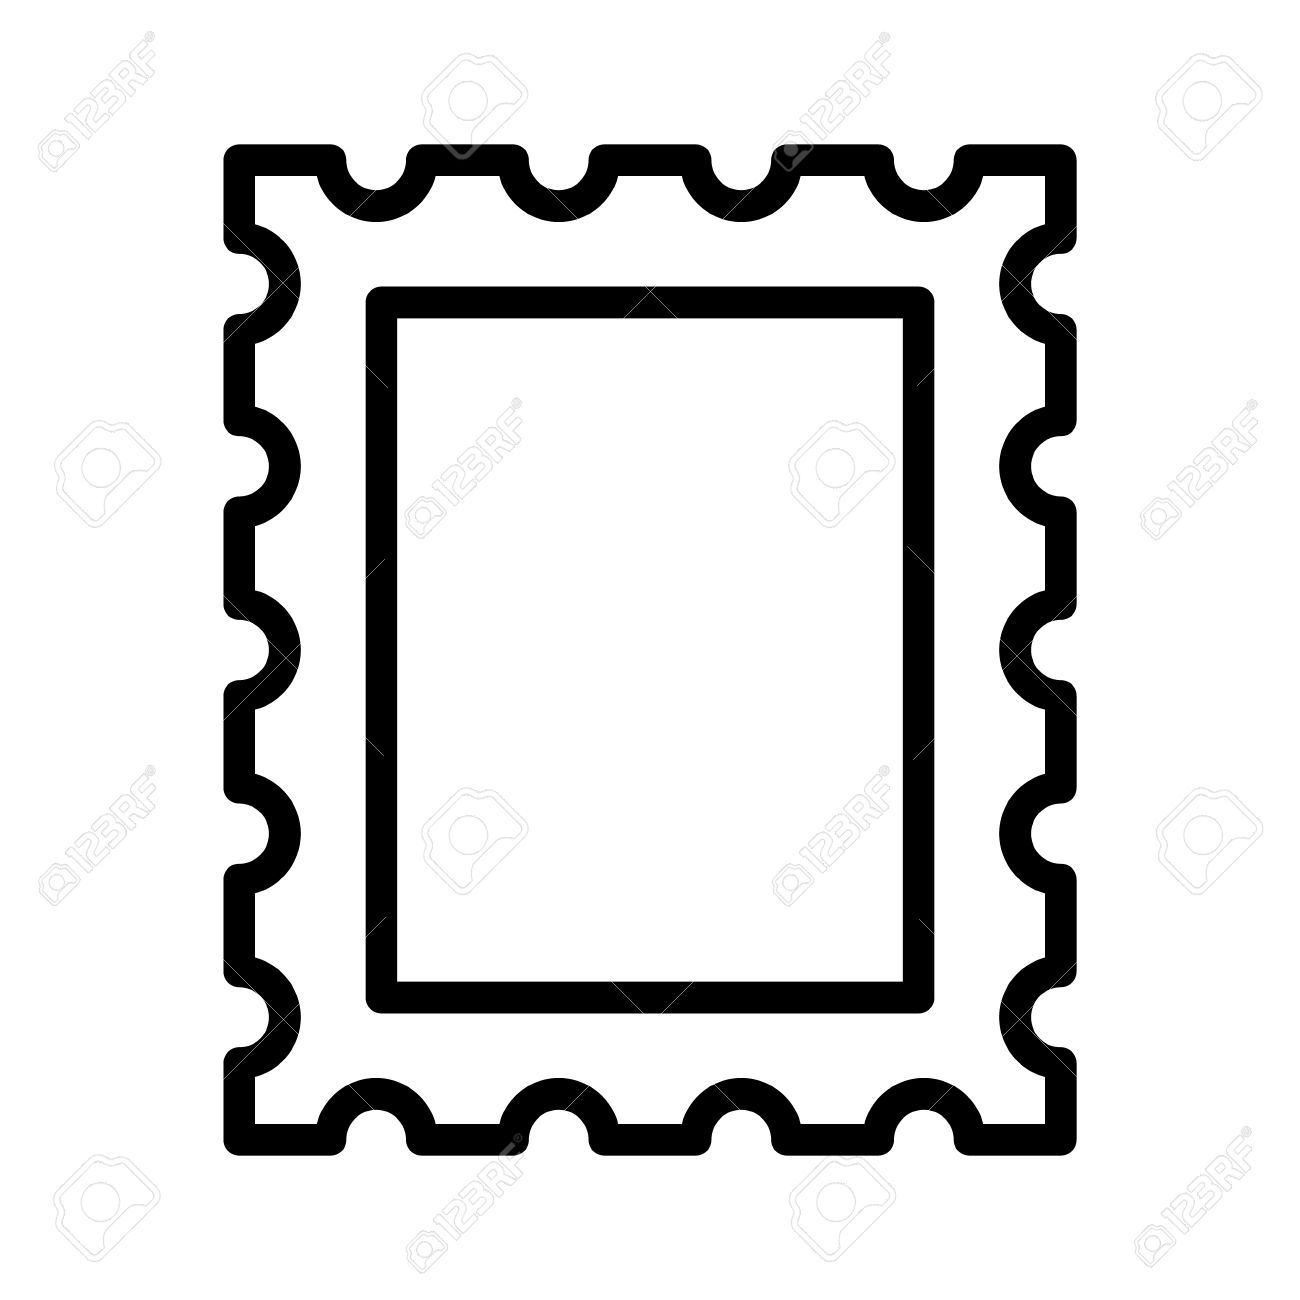 hight resolution of 1300x1300 postage stamp or letter stamp line art icon royalty free cliparts